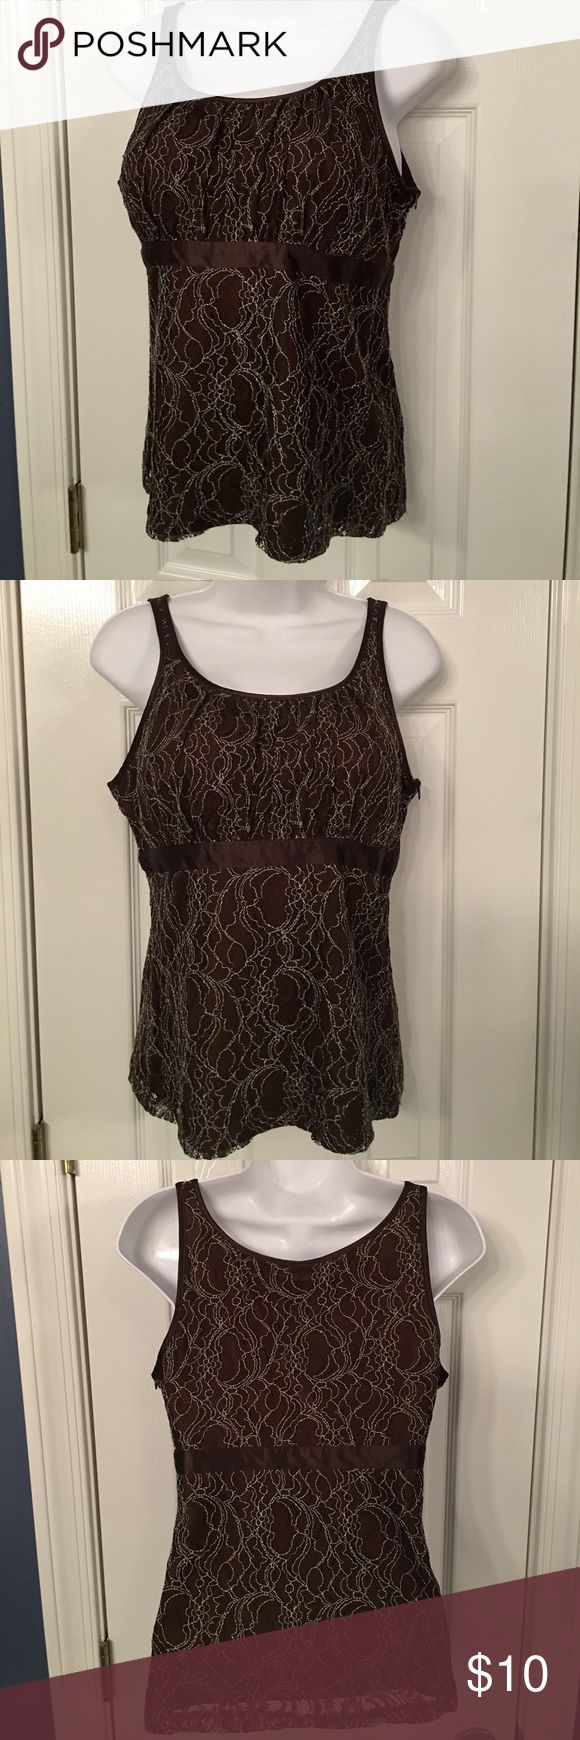 Merona Sleeveless Cami top in Brown Lace Merona Brown Cami or top in Lace with satin piping. Side zipper. Size is medium. Merona Tops Camisoles